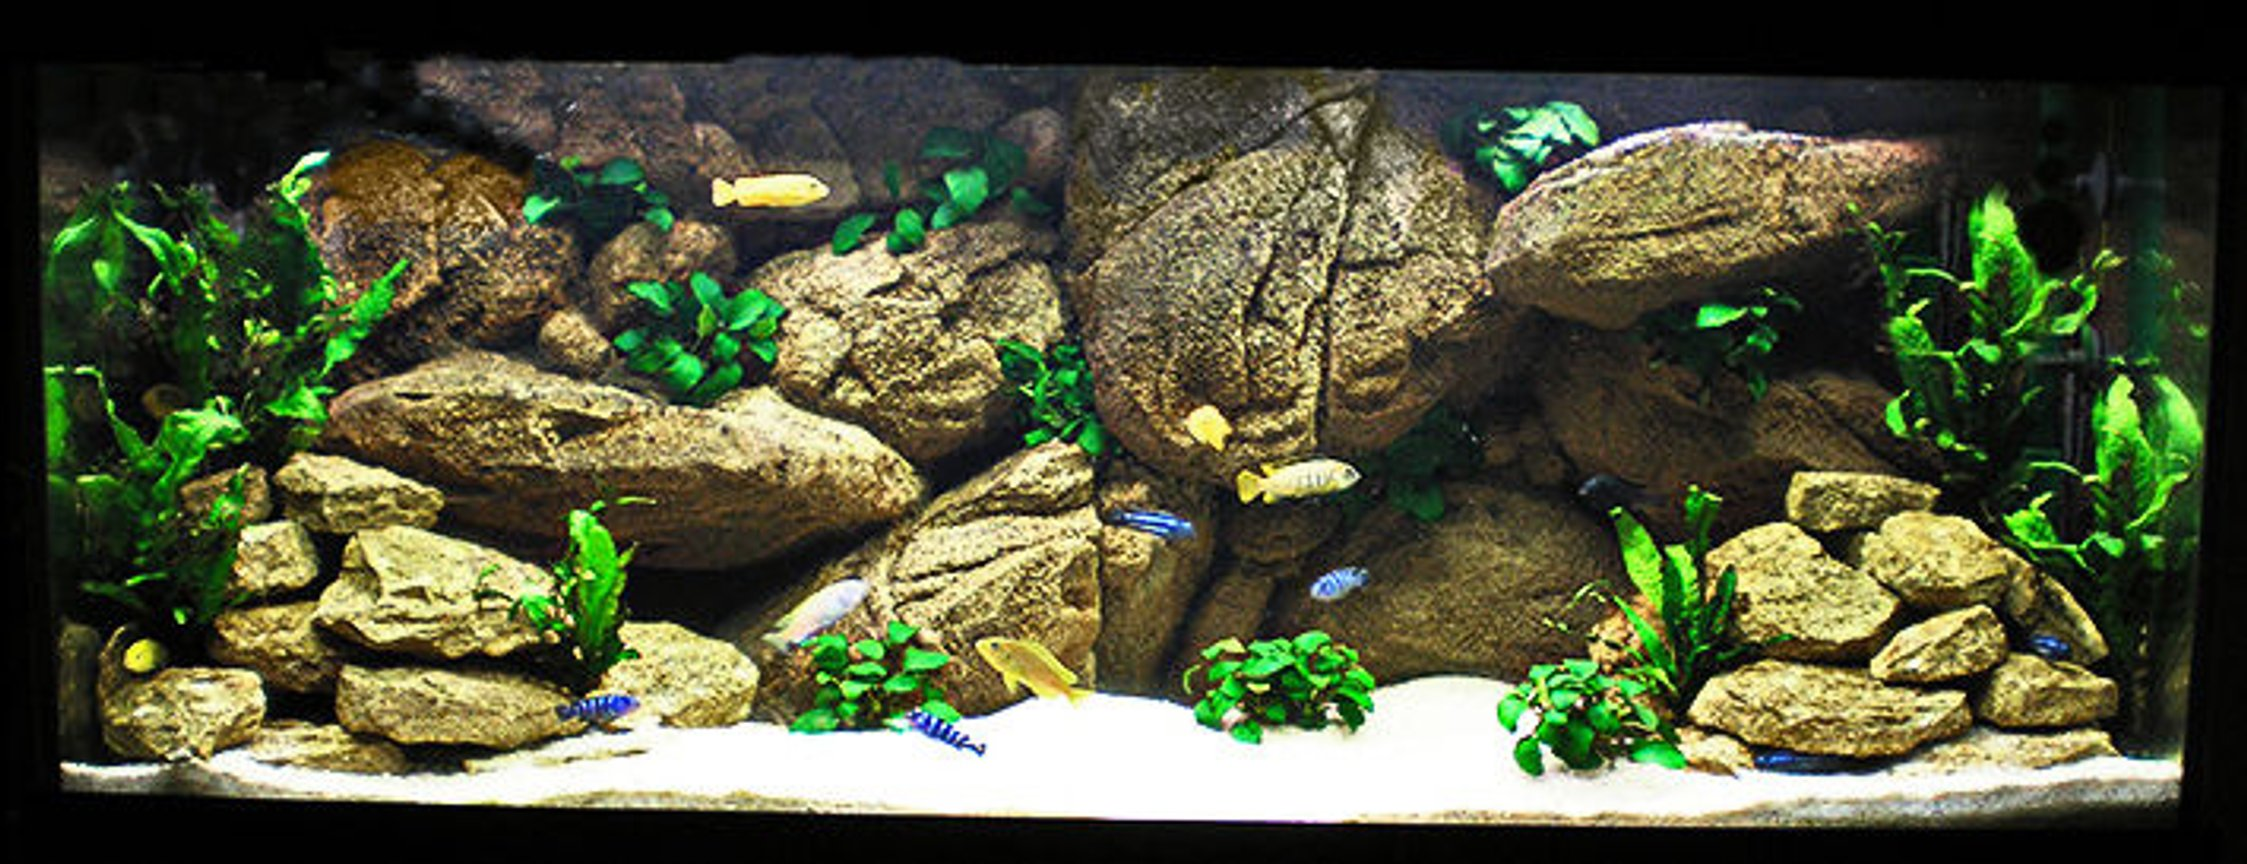 63 gallons freshwater fish tank (mostly fish and non-living decorations) - My Mbuna Tank